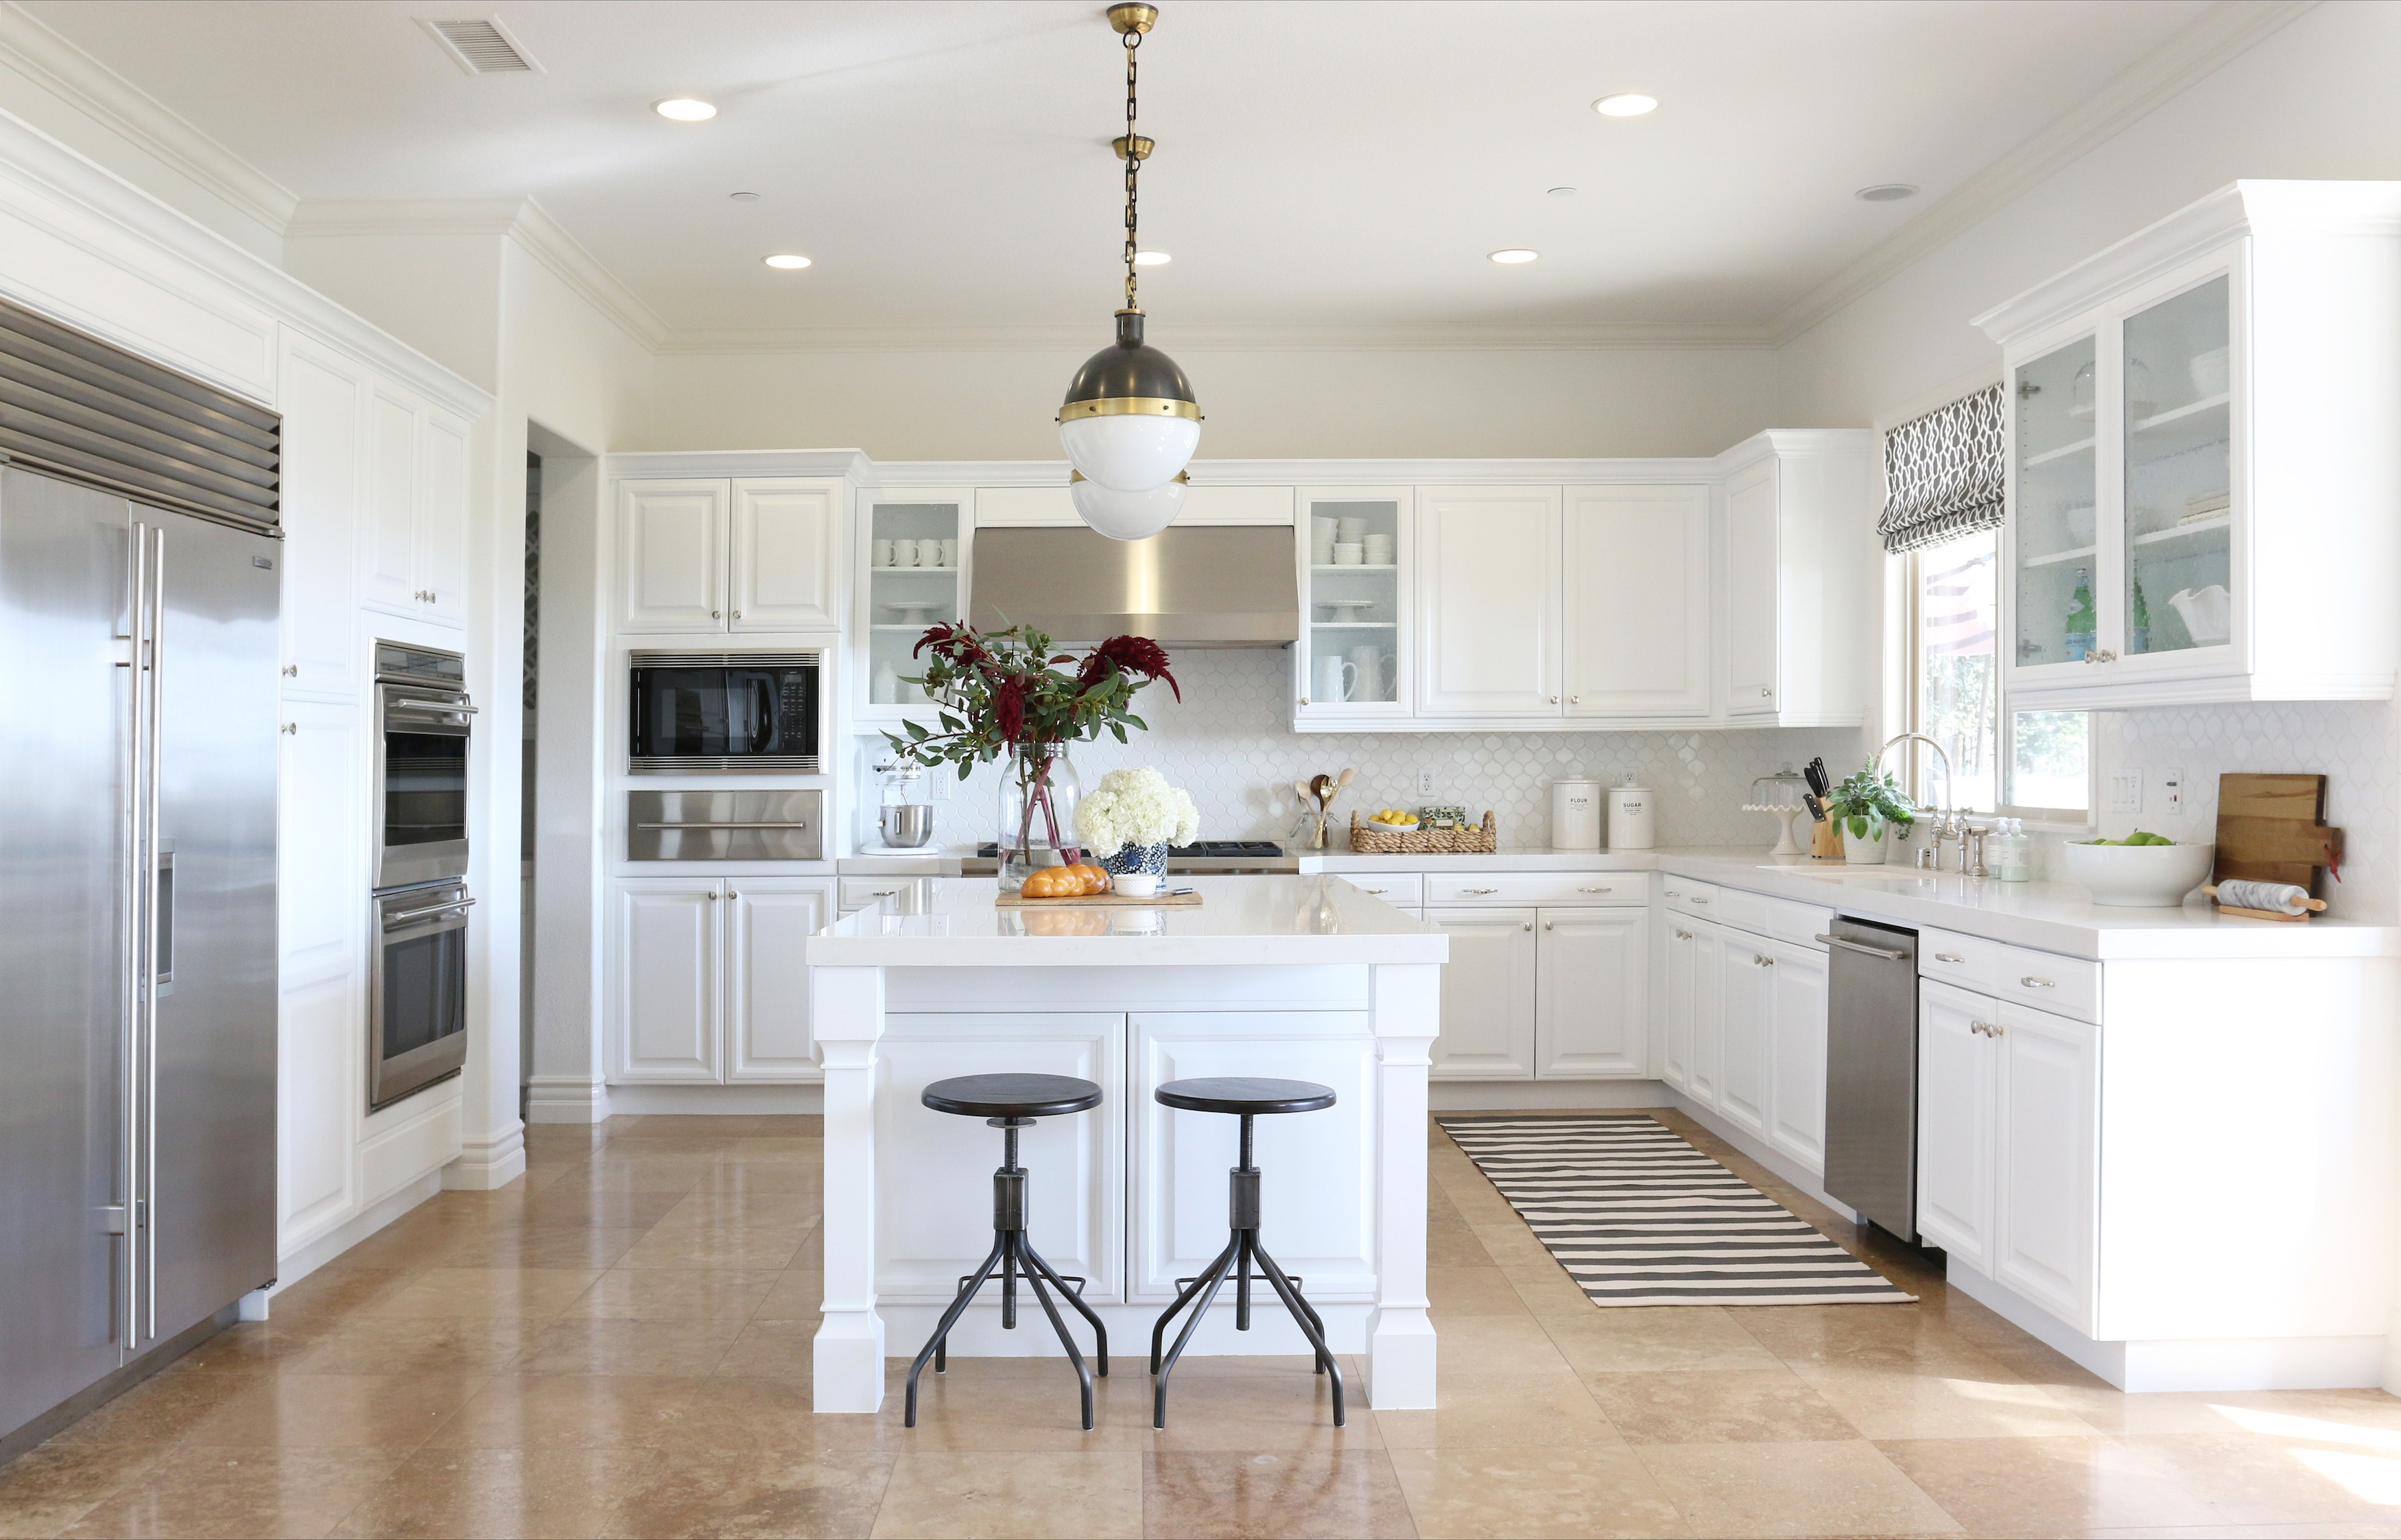 White Kitchen Cabinets Ideas For Countertops11 best white kitchen cabinets design ideas for white cabinets